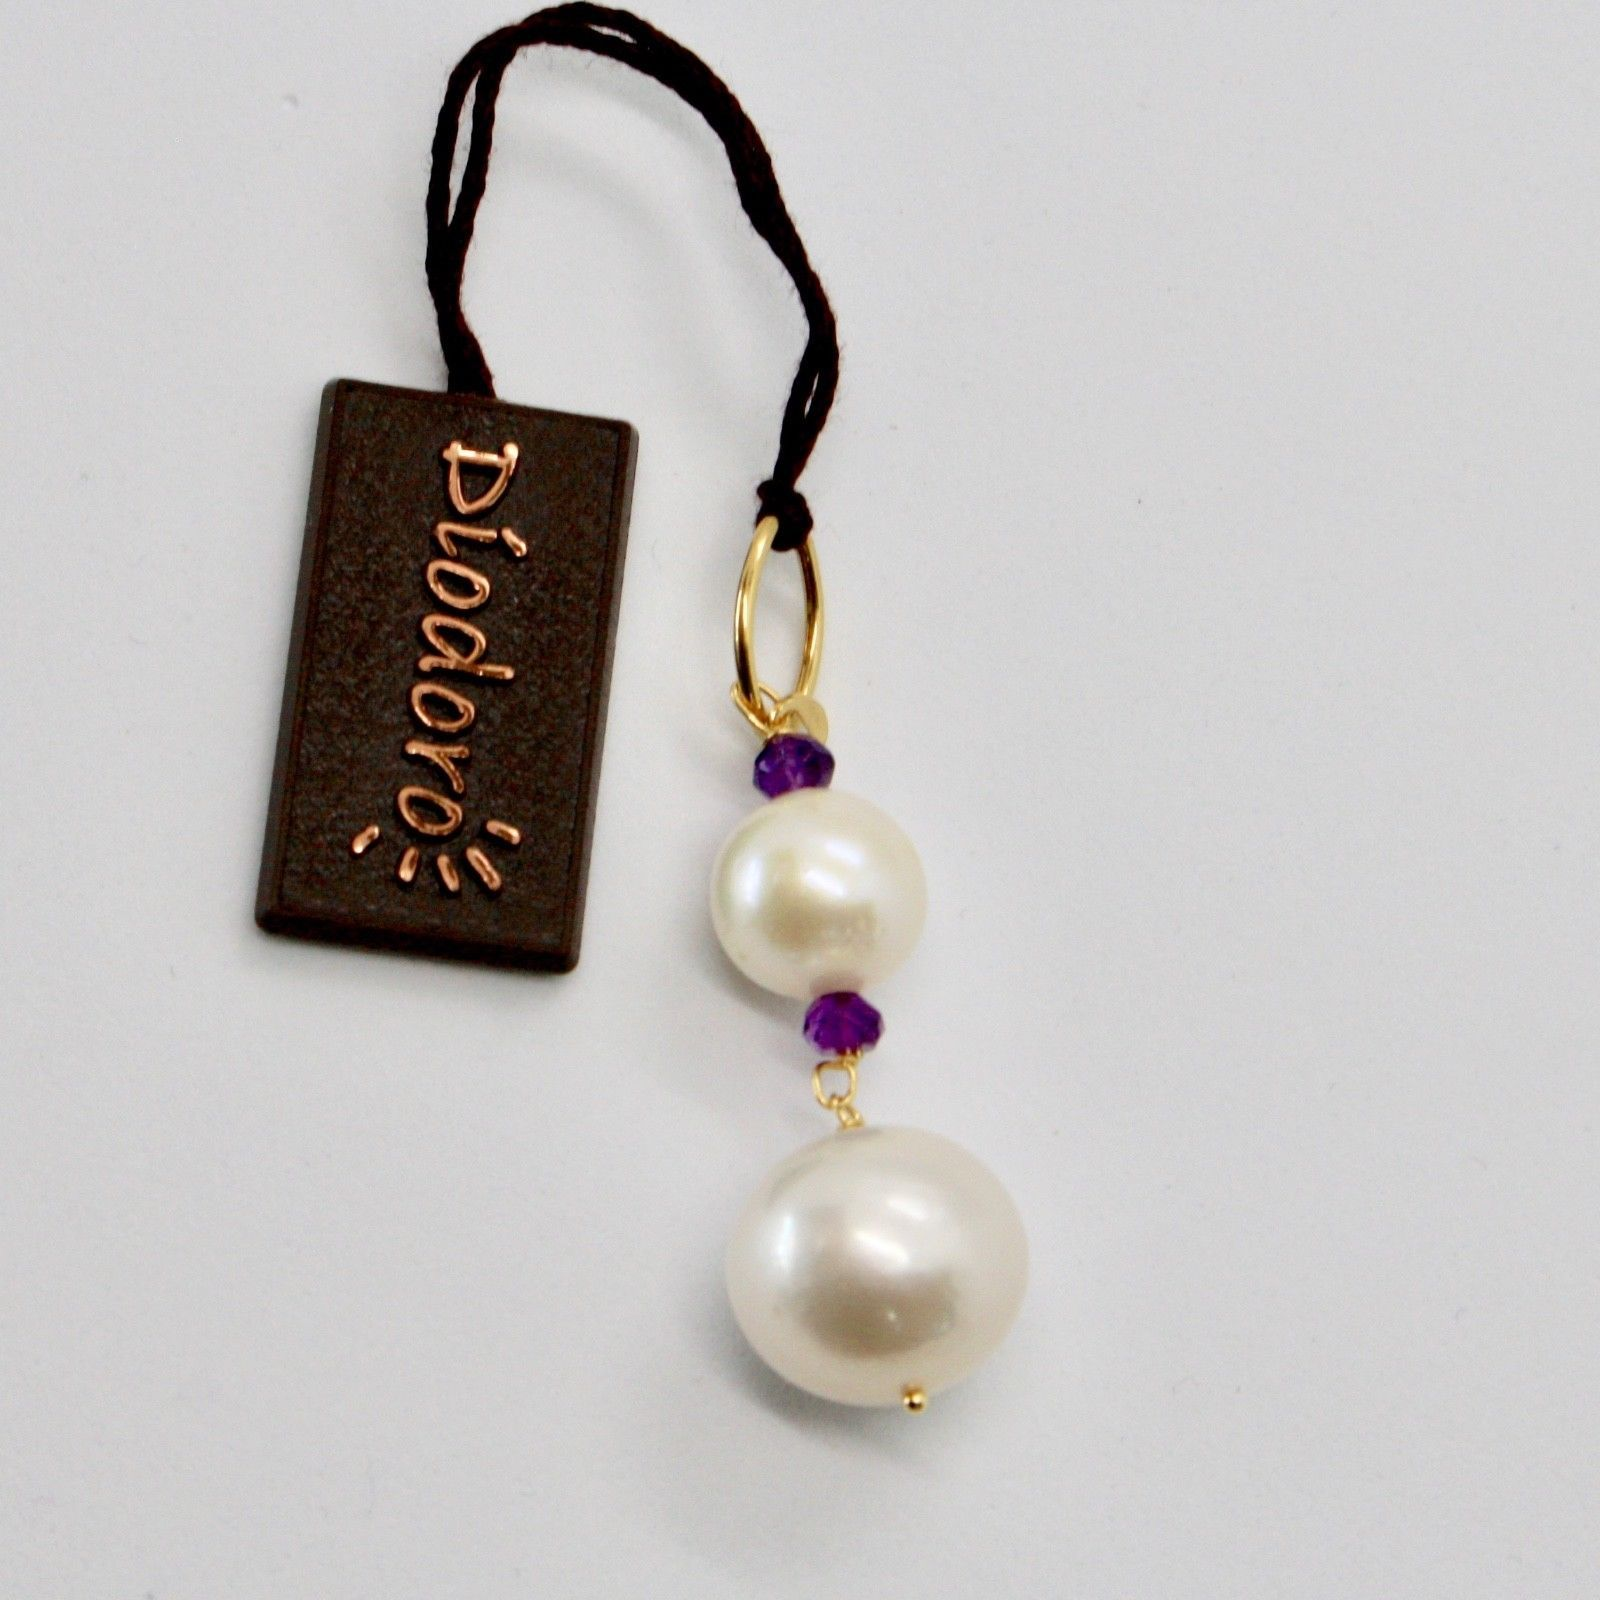 SOLID 18K YELLOW GOLD PENDANT WITH 2 WHITE FW PEARL AND AMETHYST MADE IN ITALY